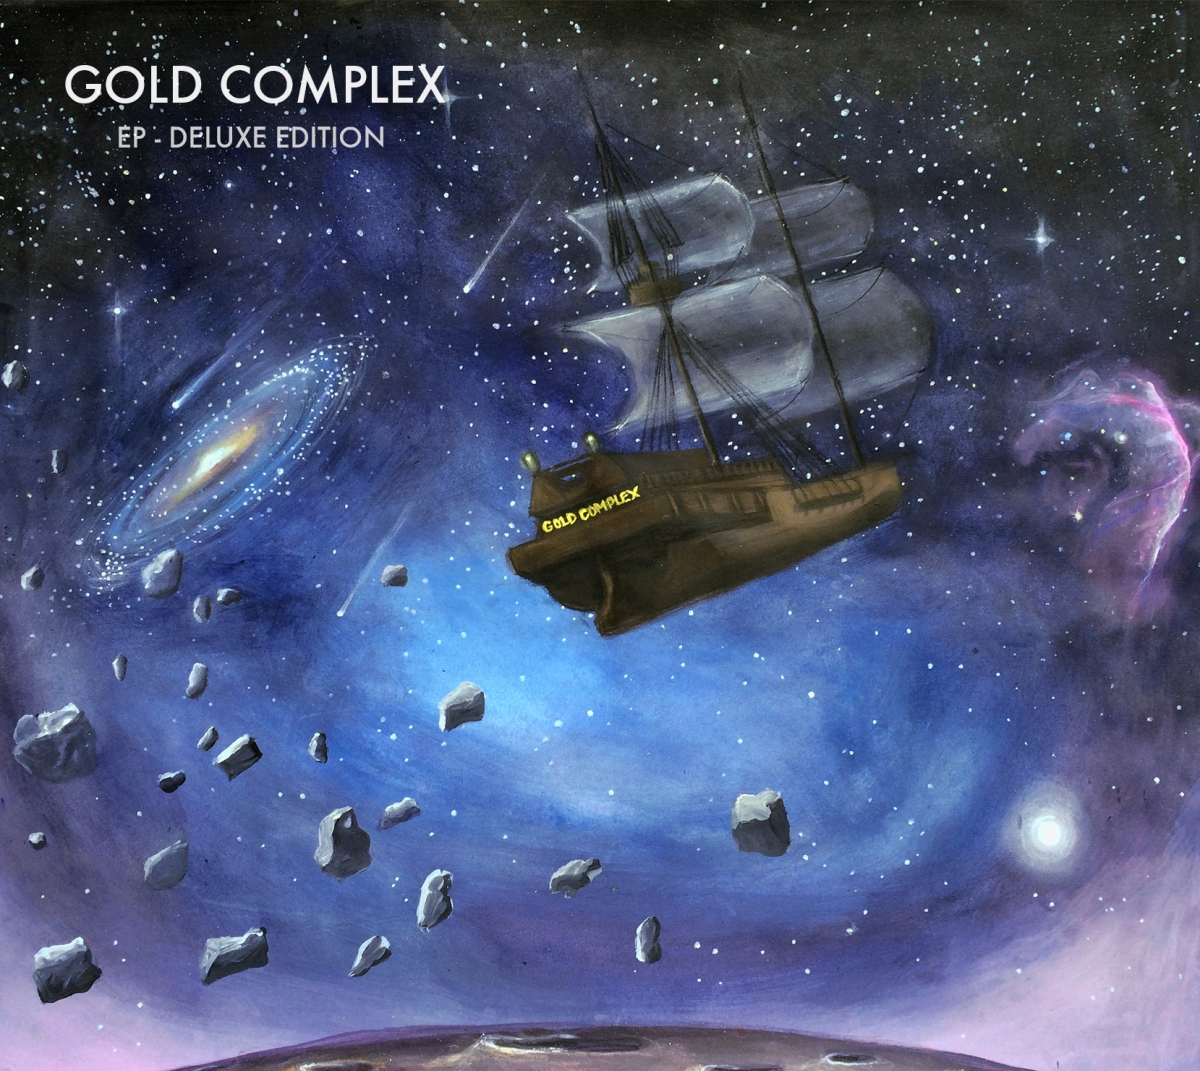 Gold Complex - EP - Deluxe Edition Artwork.jpg